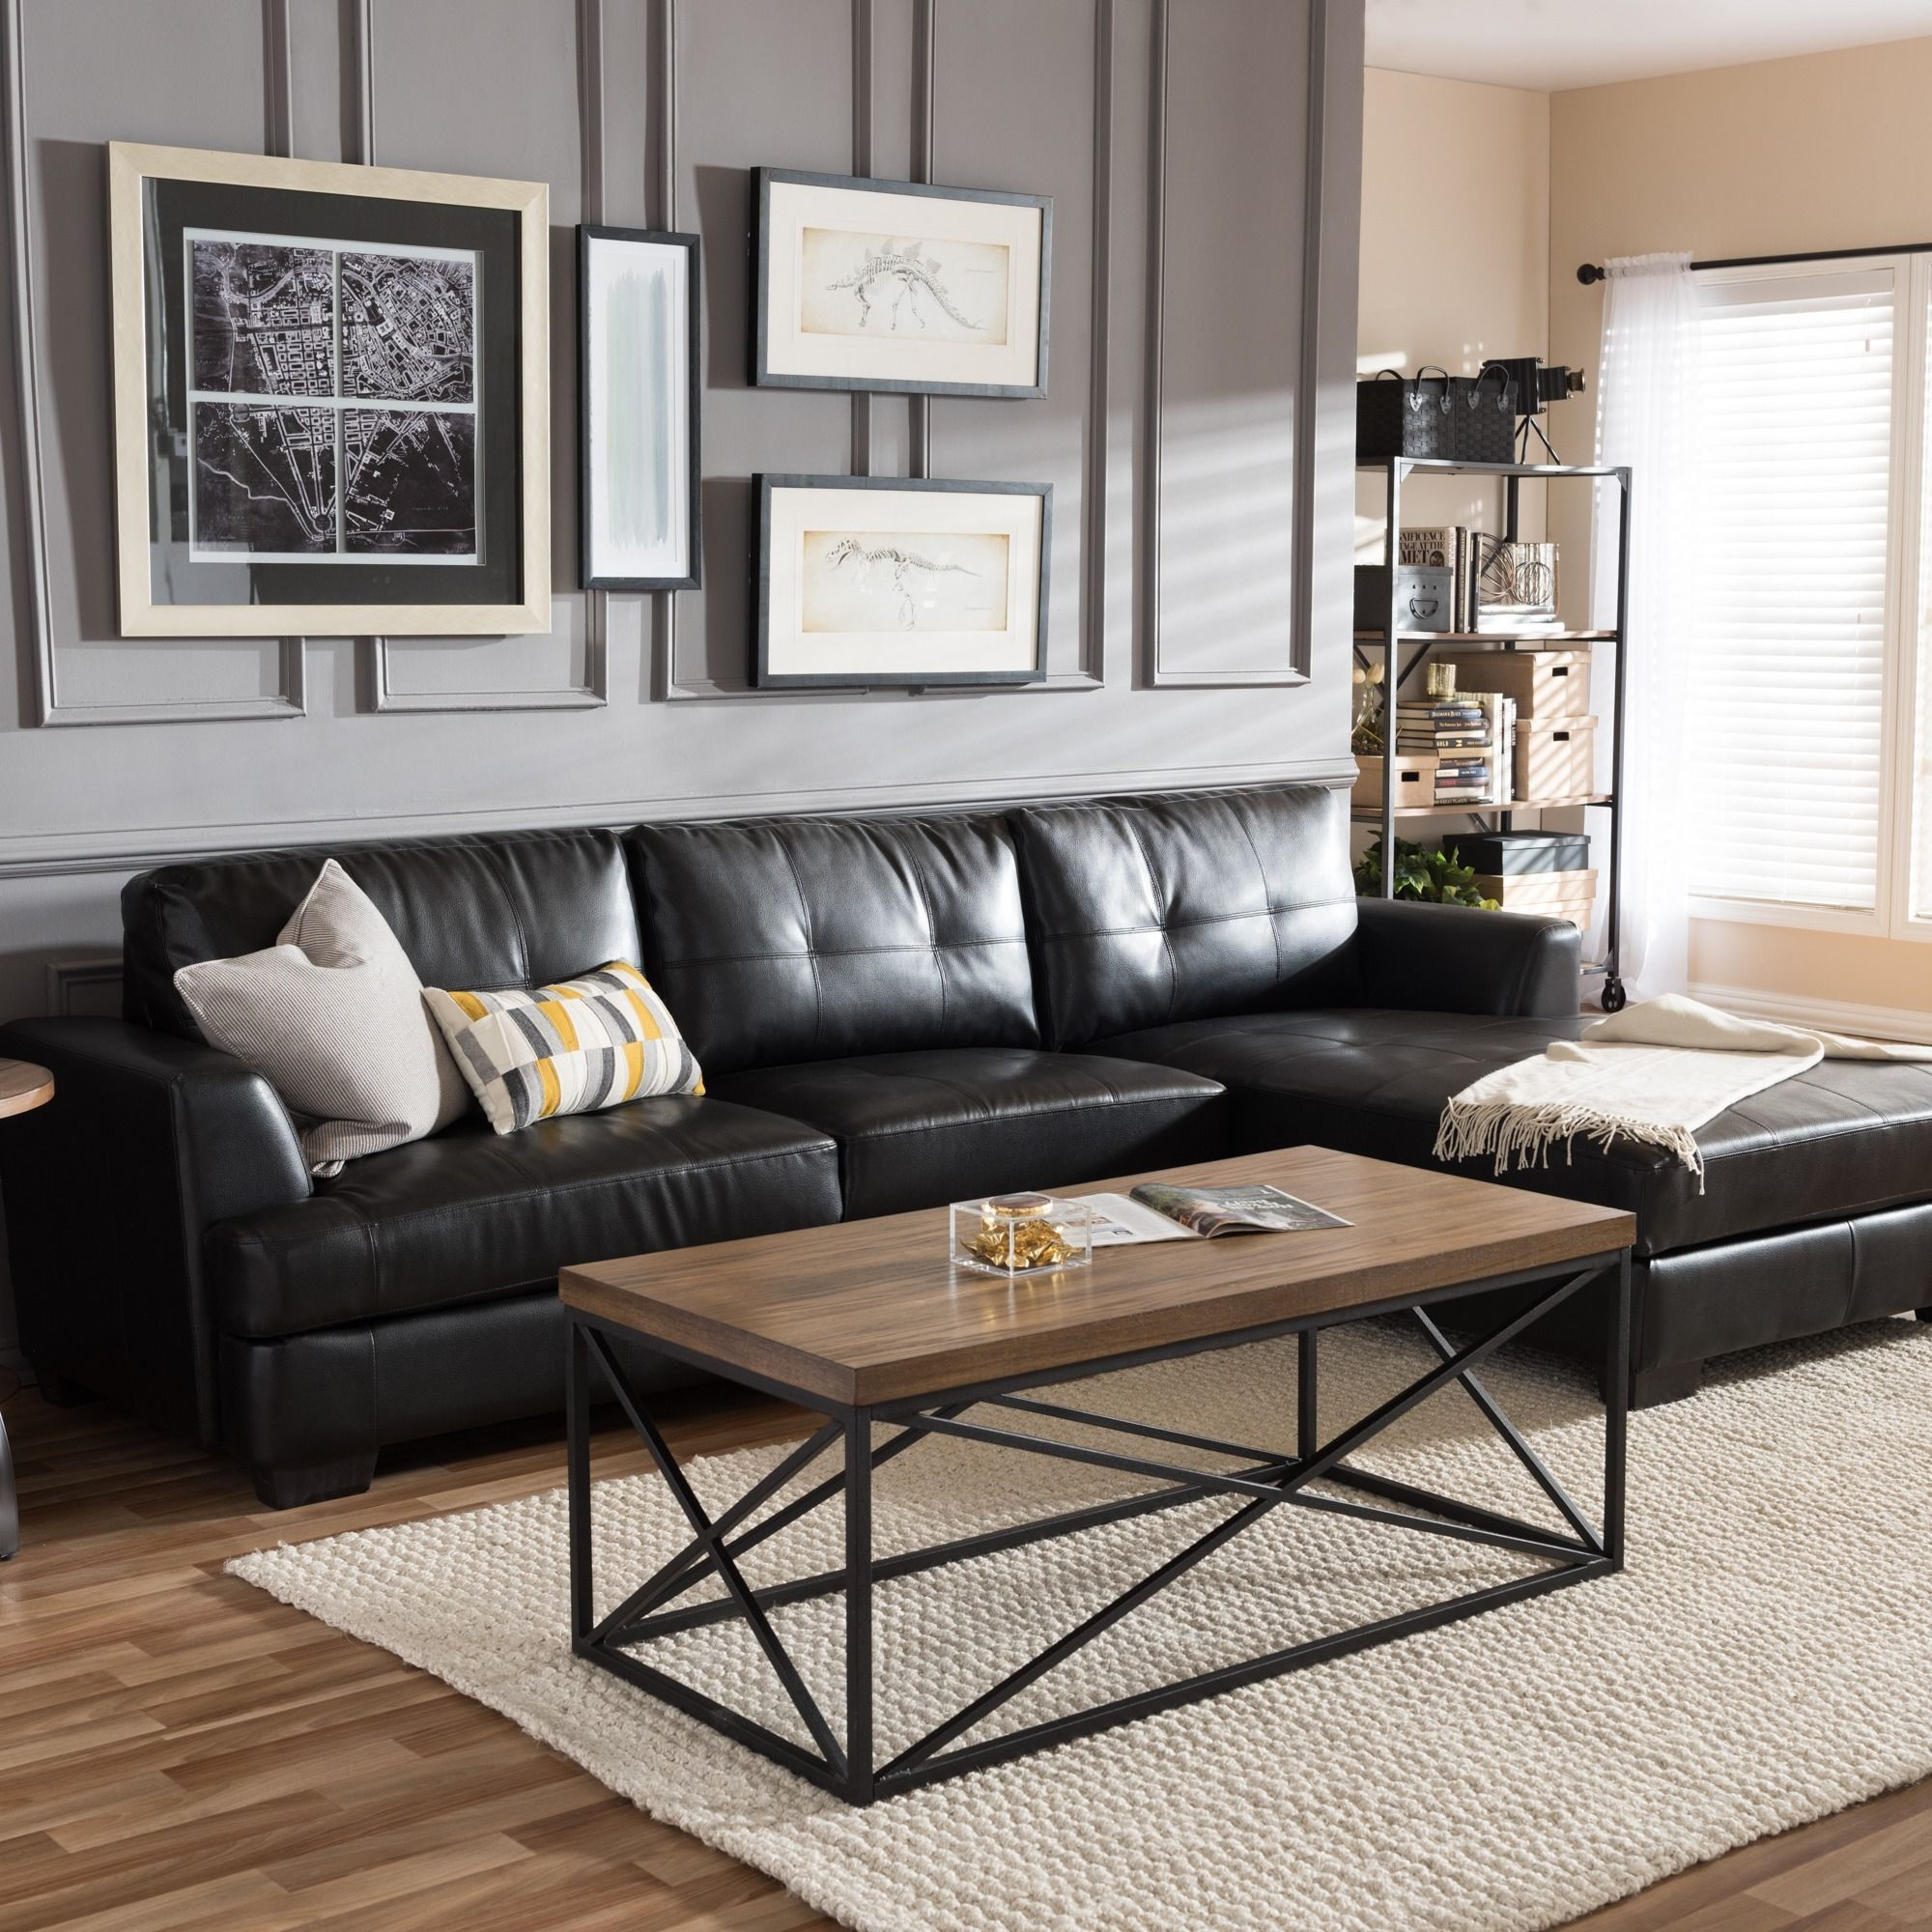 This dobson modern sectional sofa will get you the most bang for